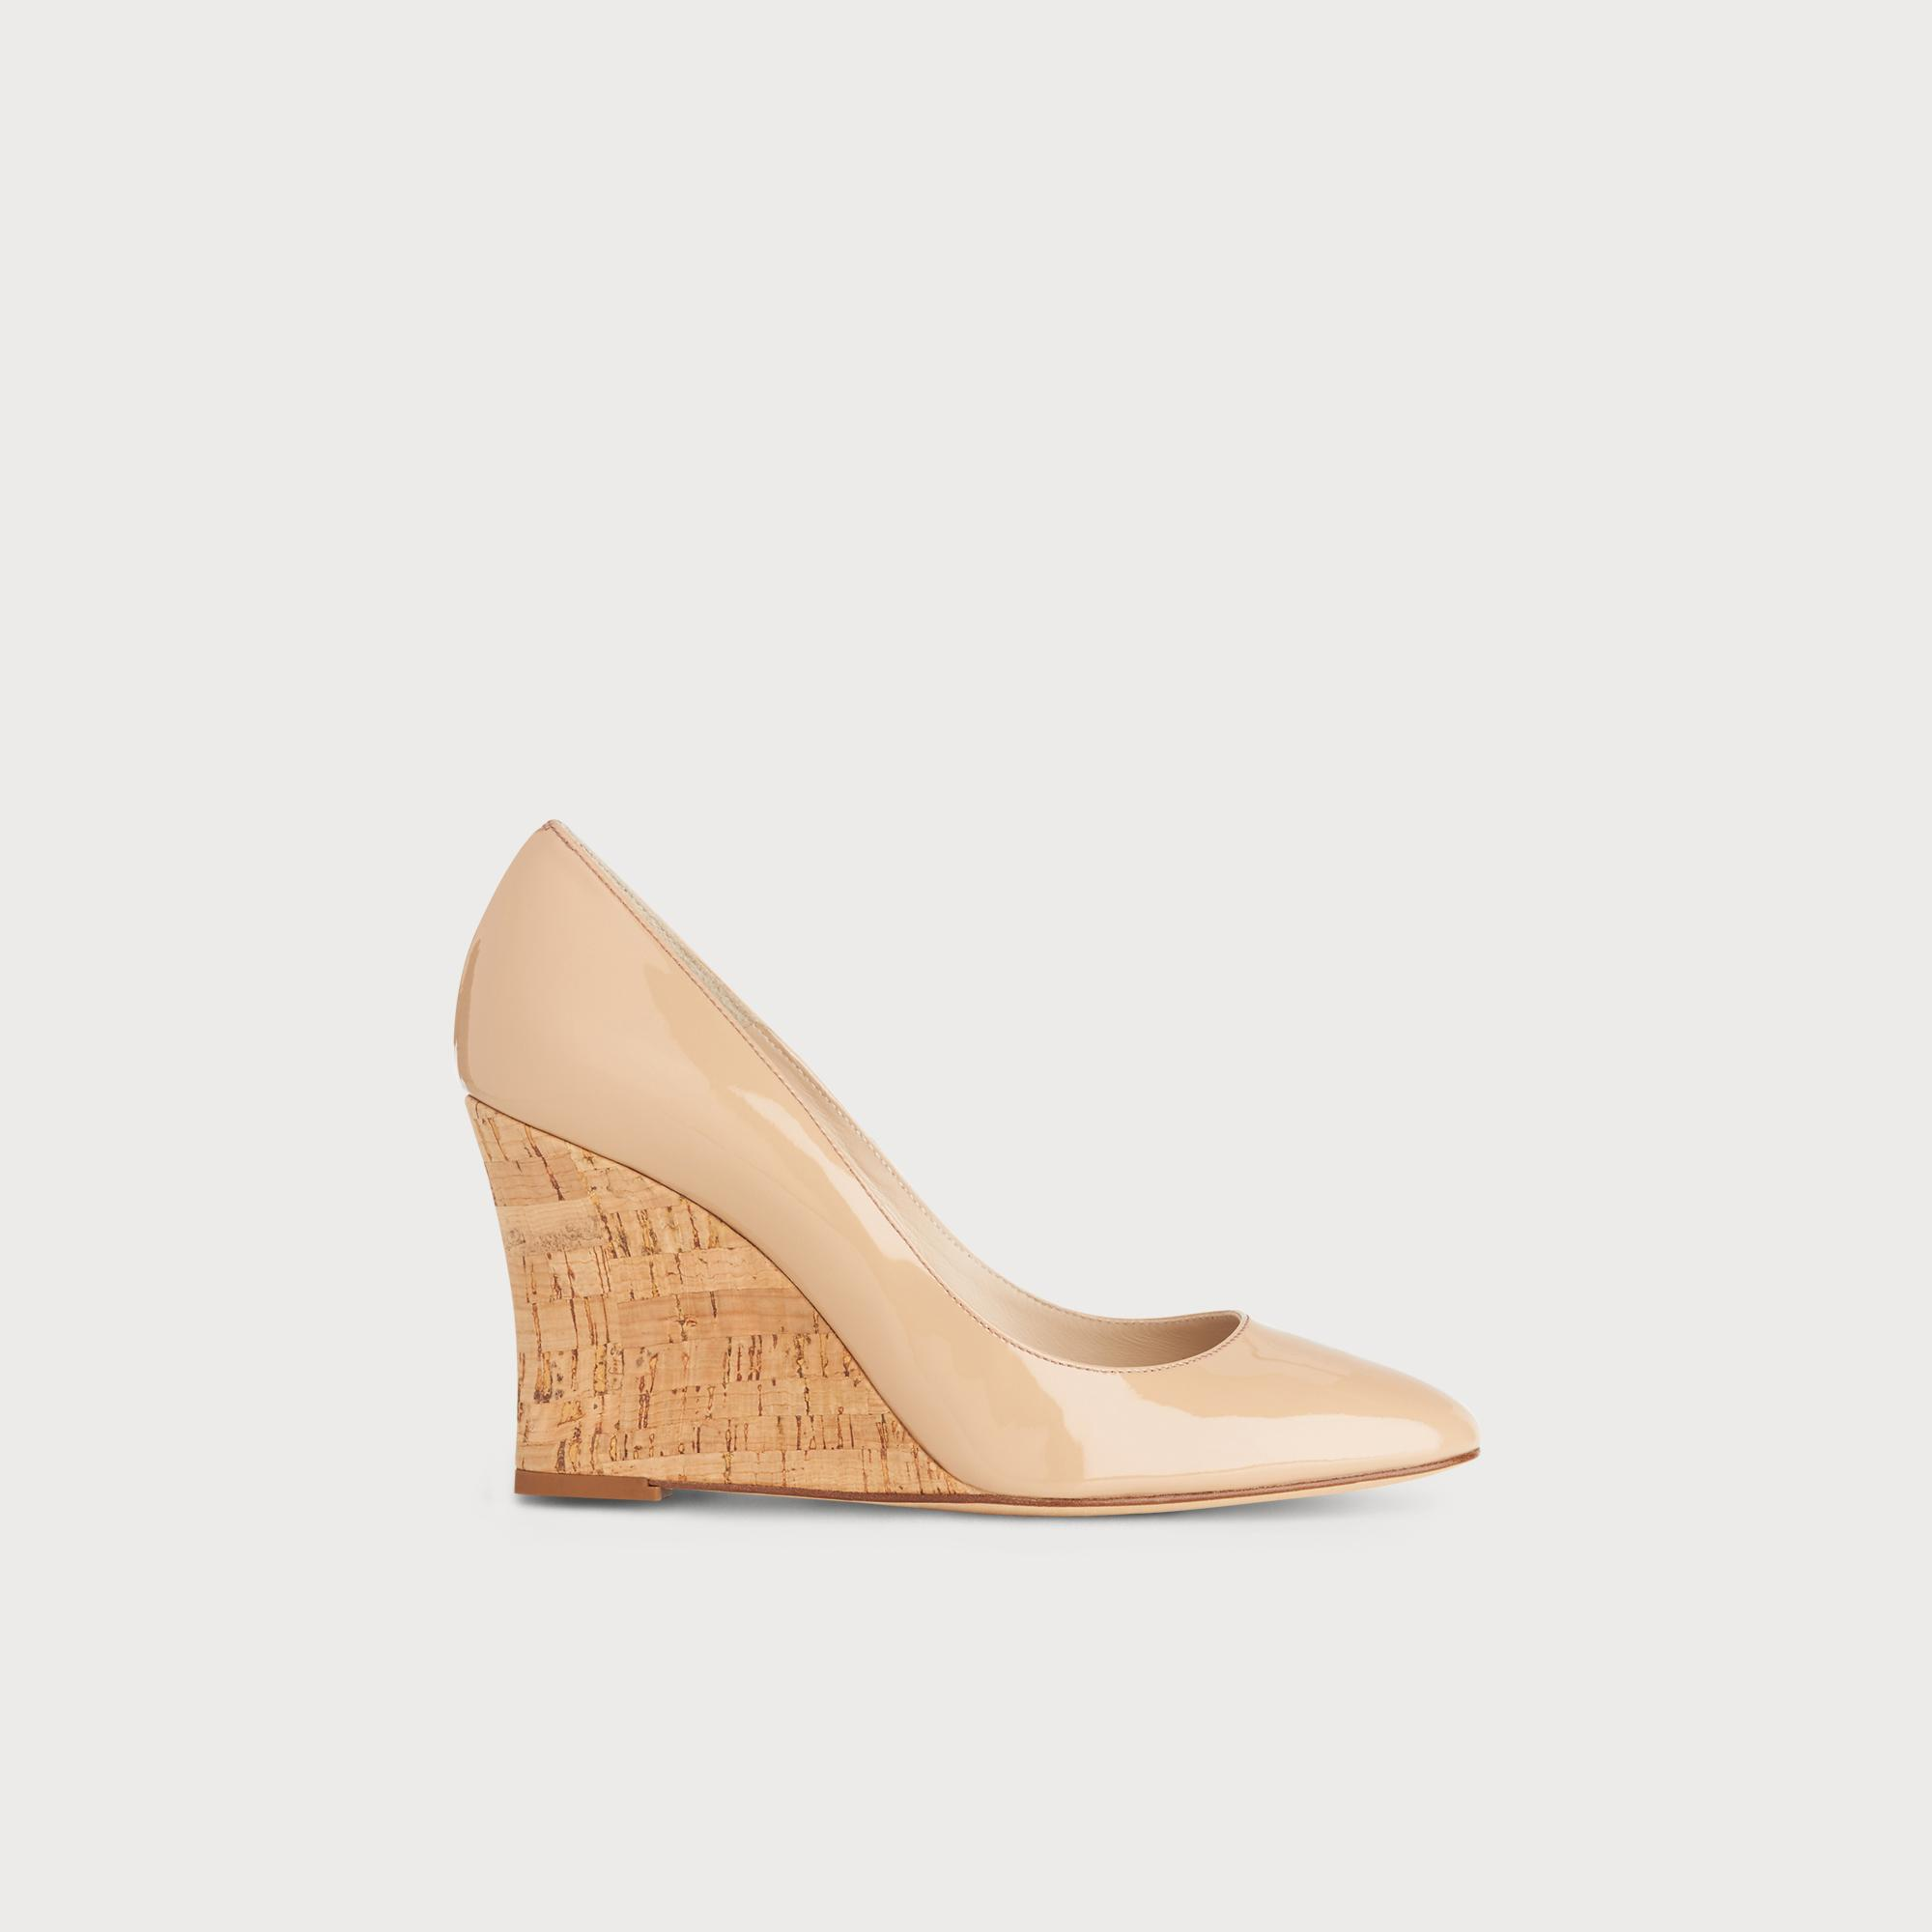 f6efcd80f869 Eila Nude Patent Wedges